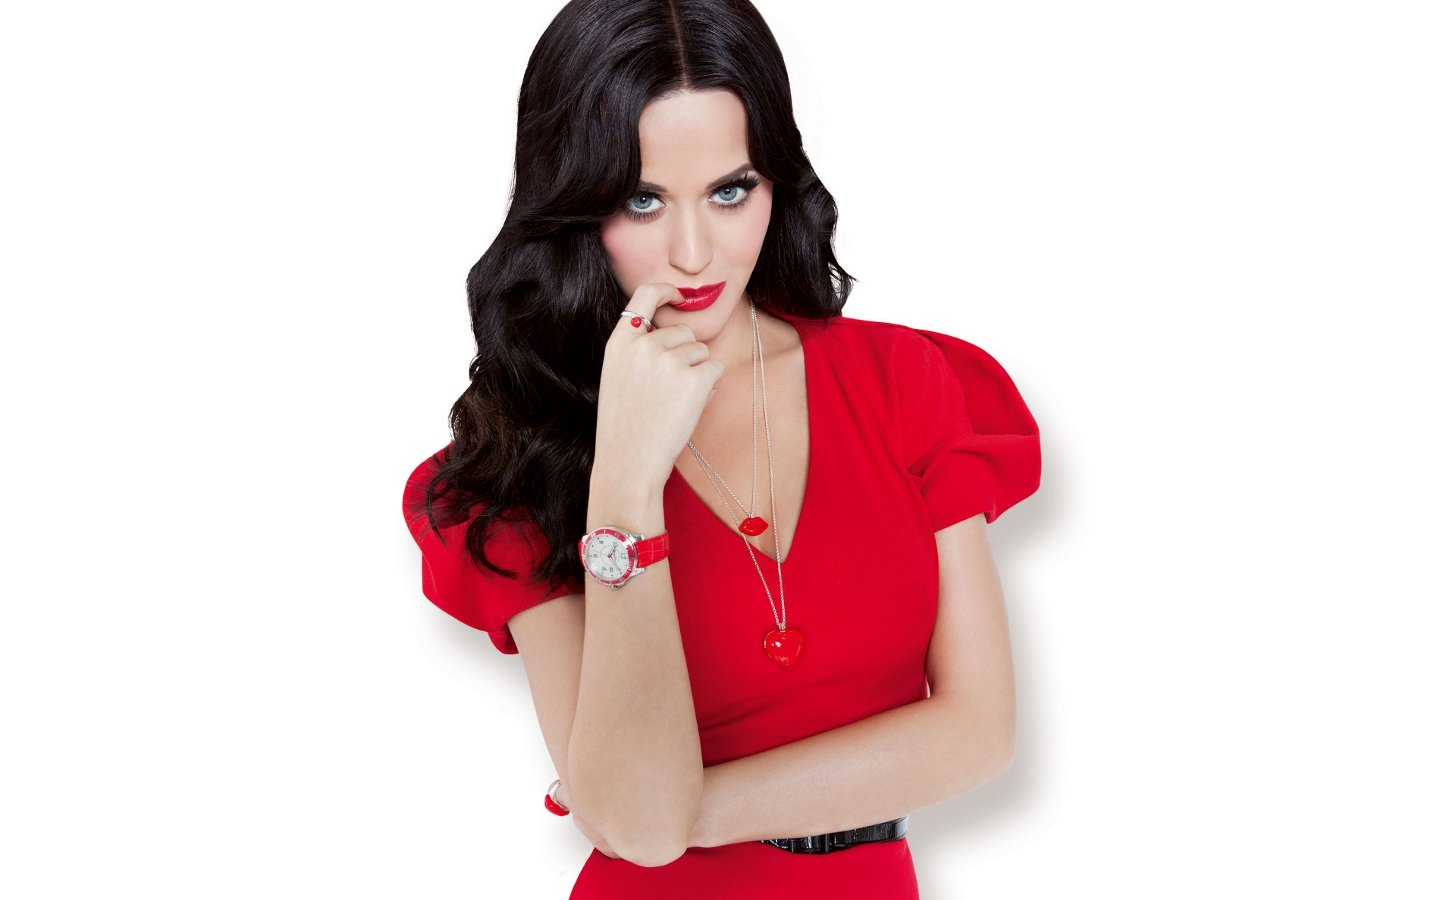 http://ipic.su/img/img7/fs/Katy-Perry-lady-in-red-katy-perry-35216725-1440-900.1454339045.jpg